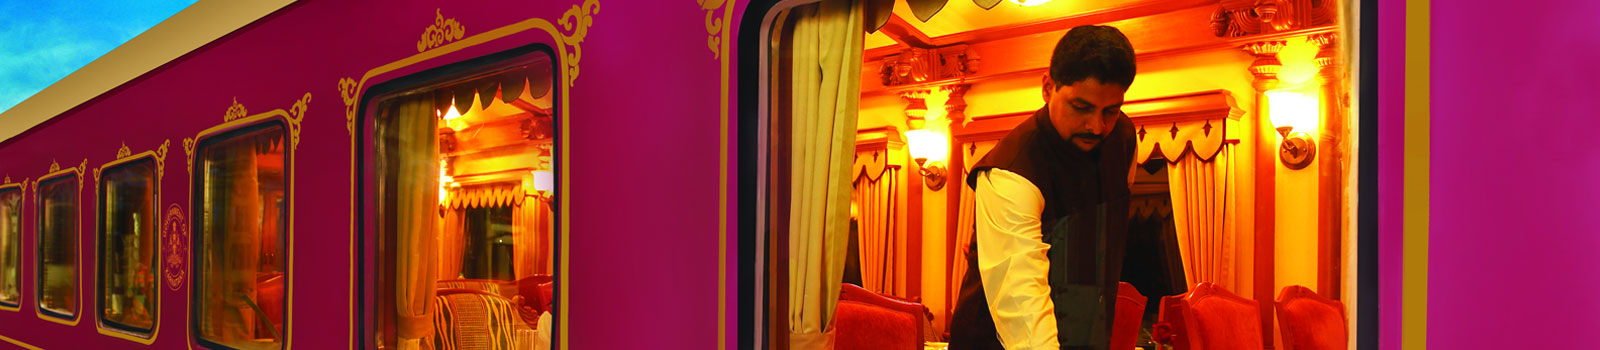 10 Fascinating Facts About The Maharajas' Express In India | Maharajas' staffs at service